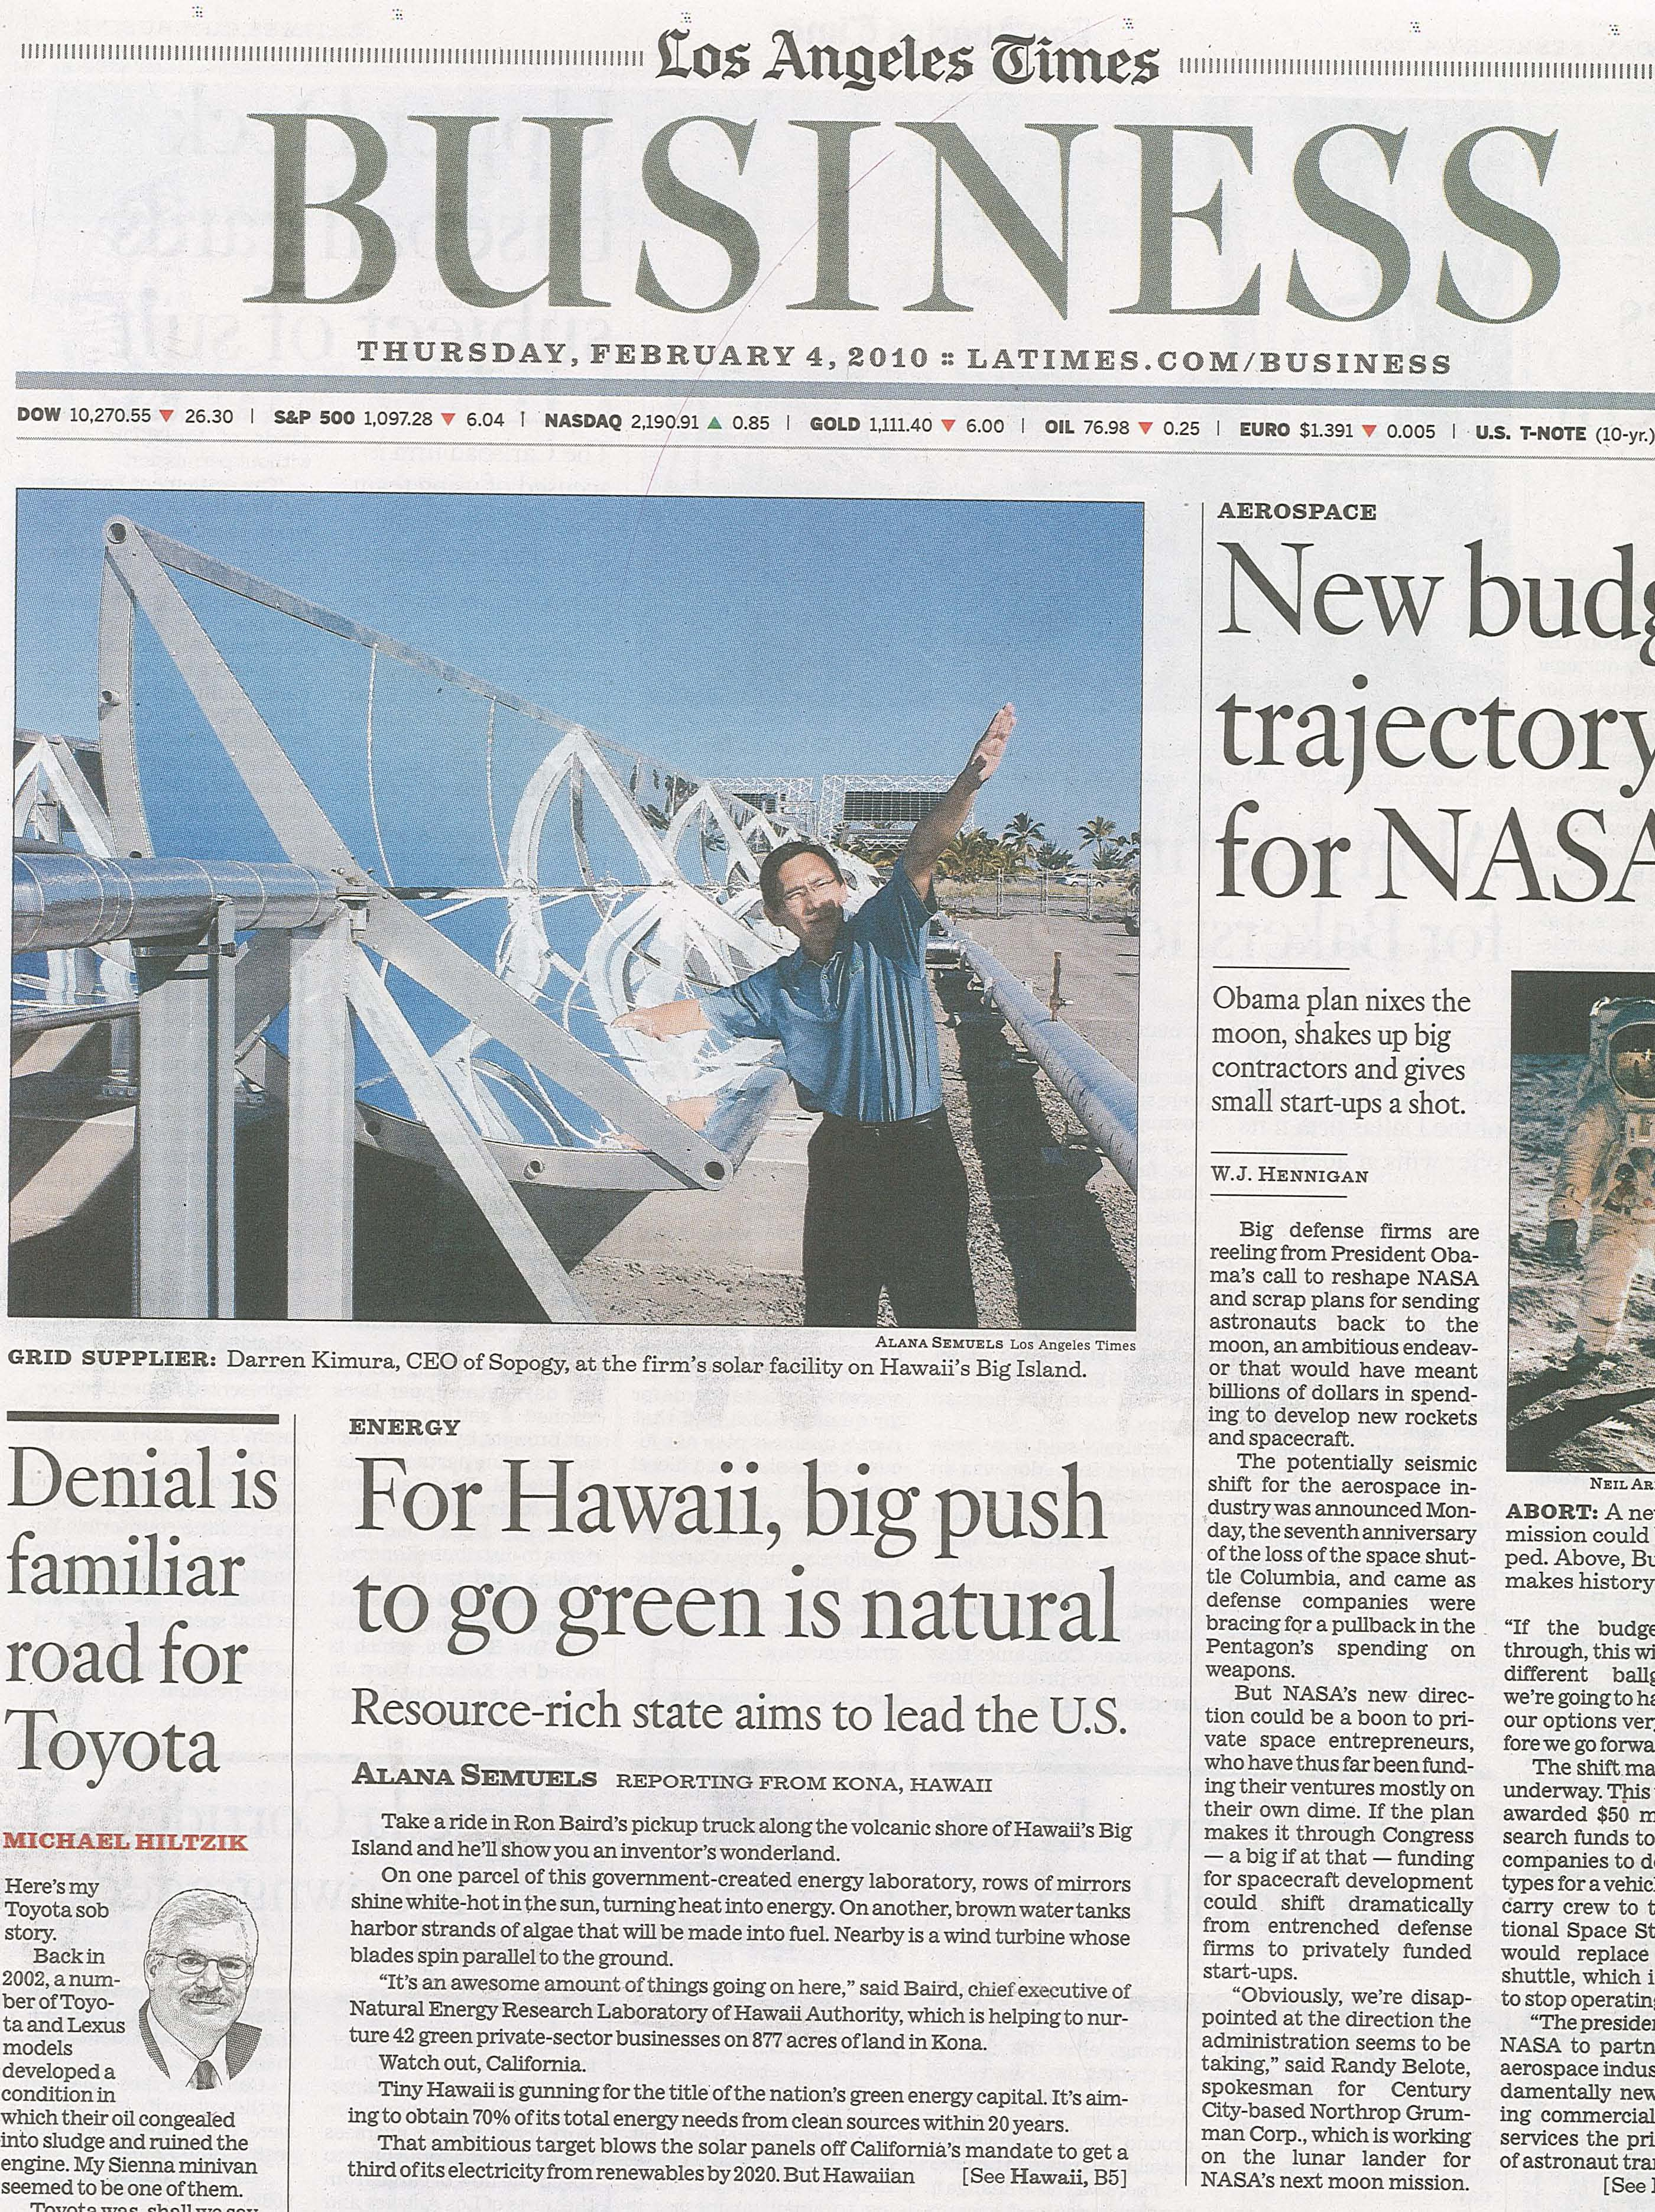 LA Times: For Hawaii, big push to go green is natural ...